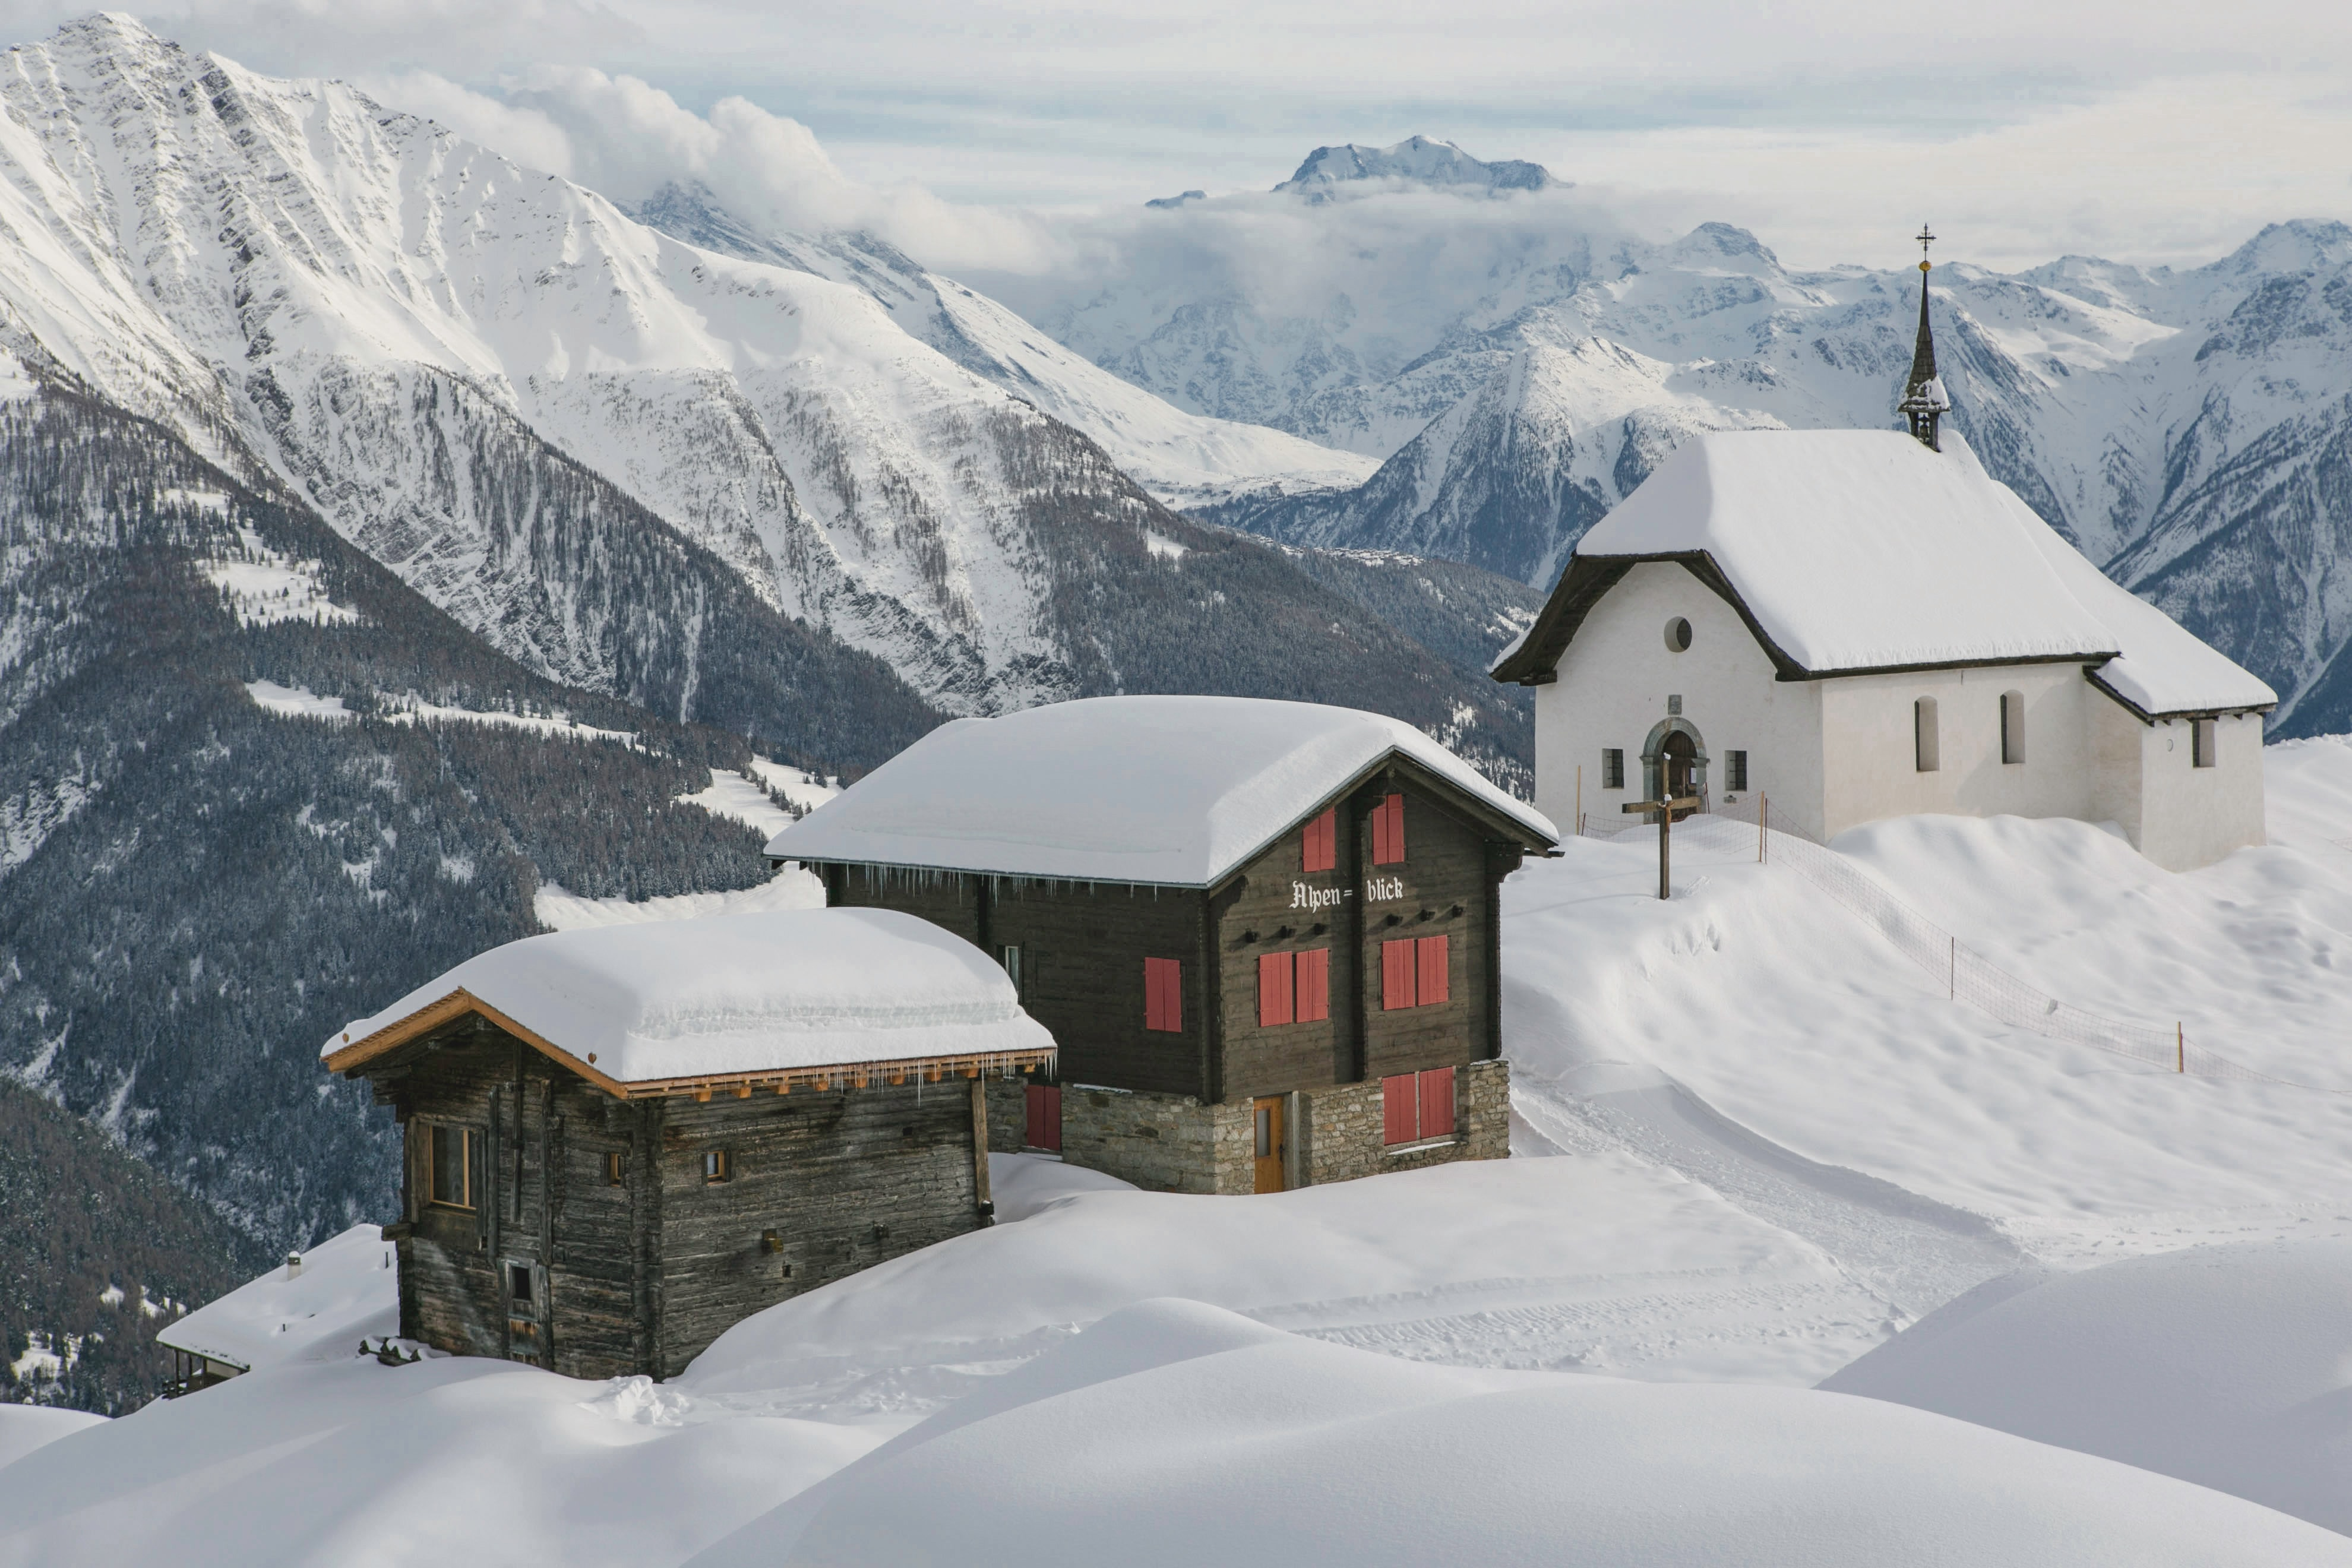 2020: Swiss property prices & rental values increased, as bankruptcies fell